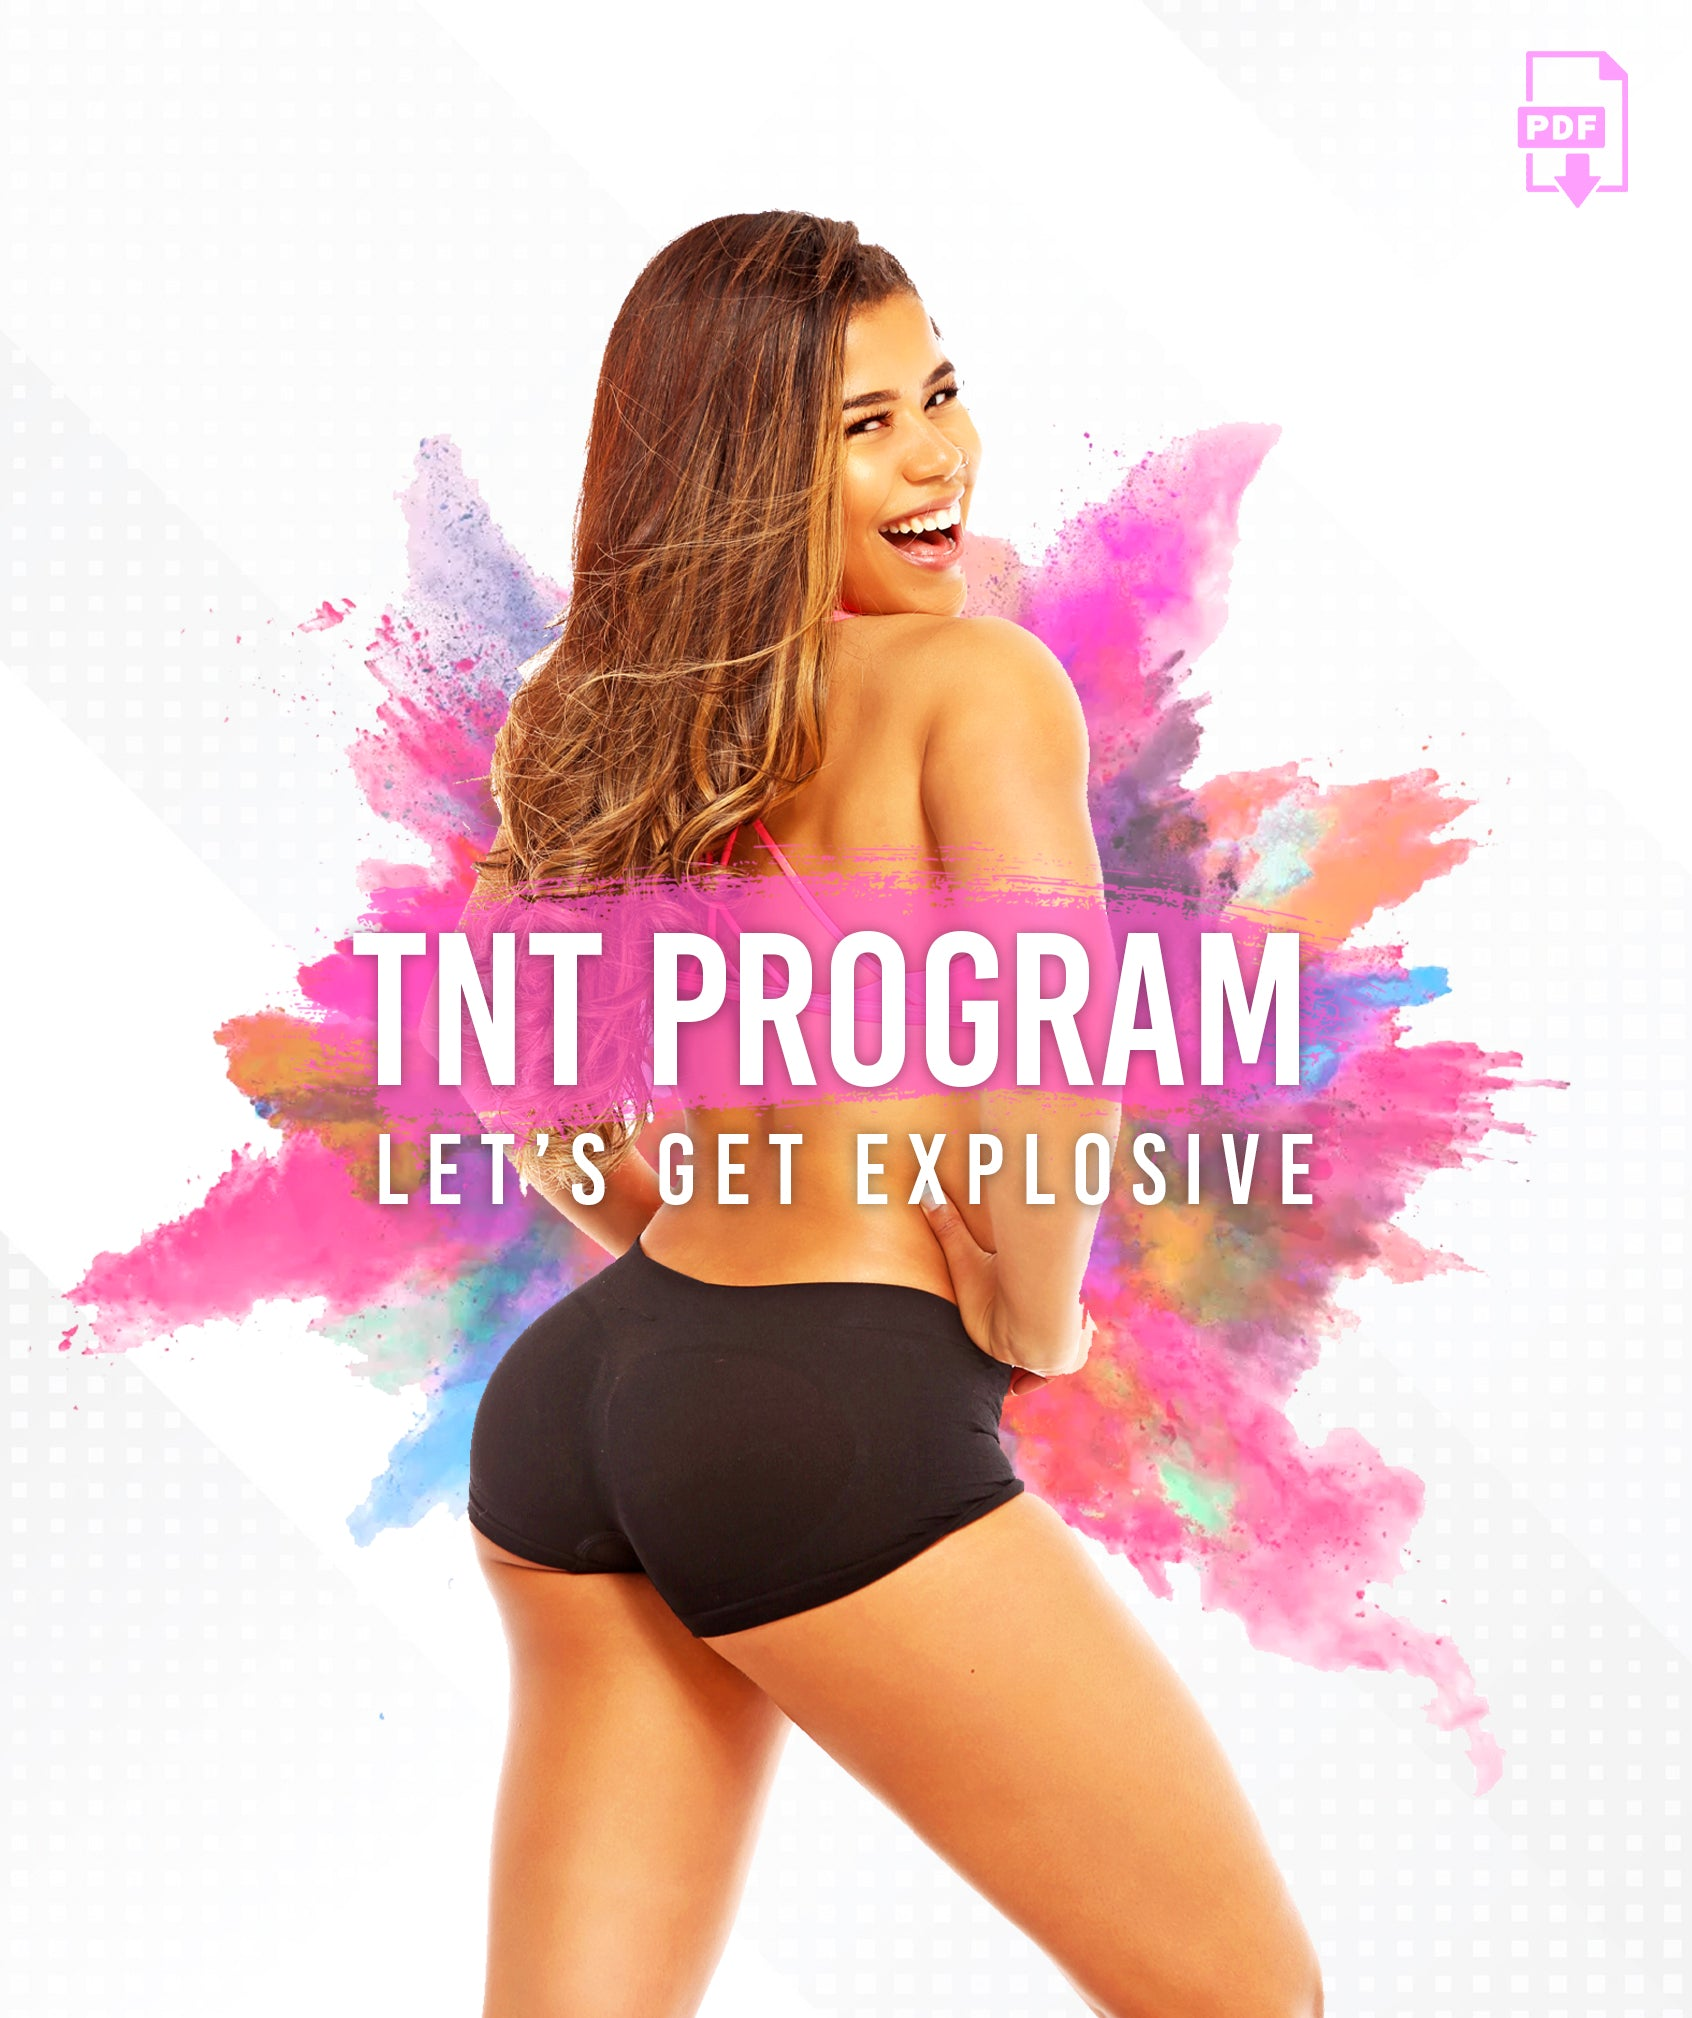 THE TNT PROGRAM